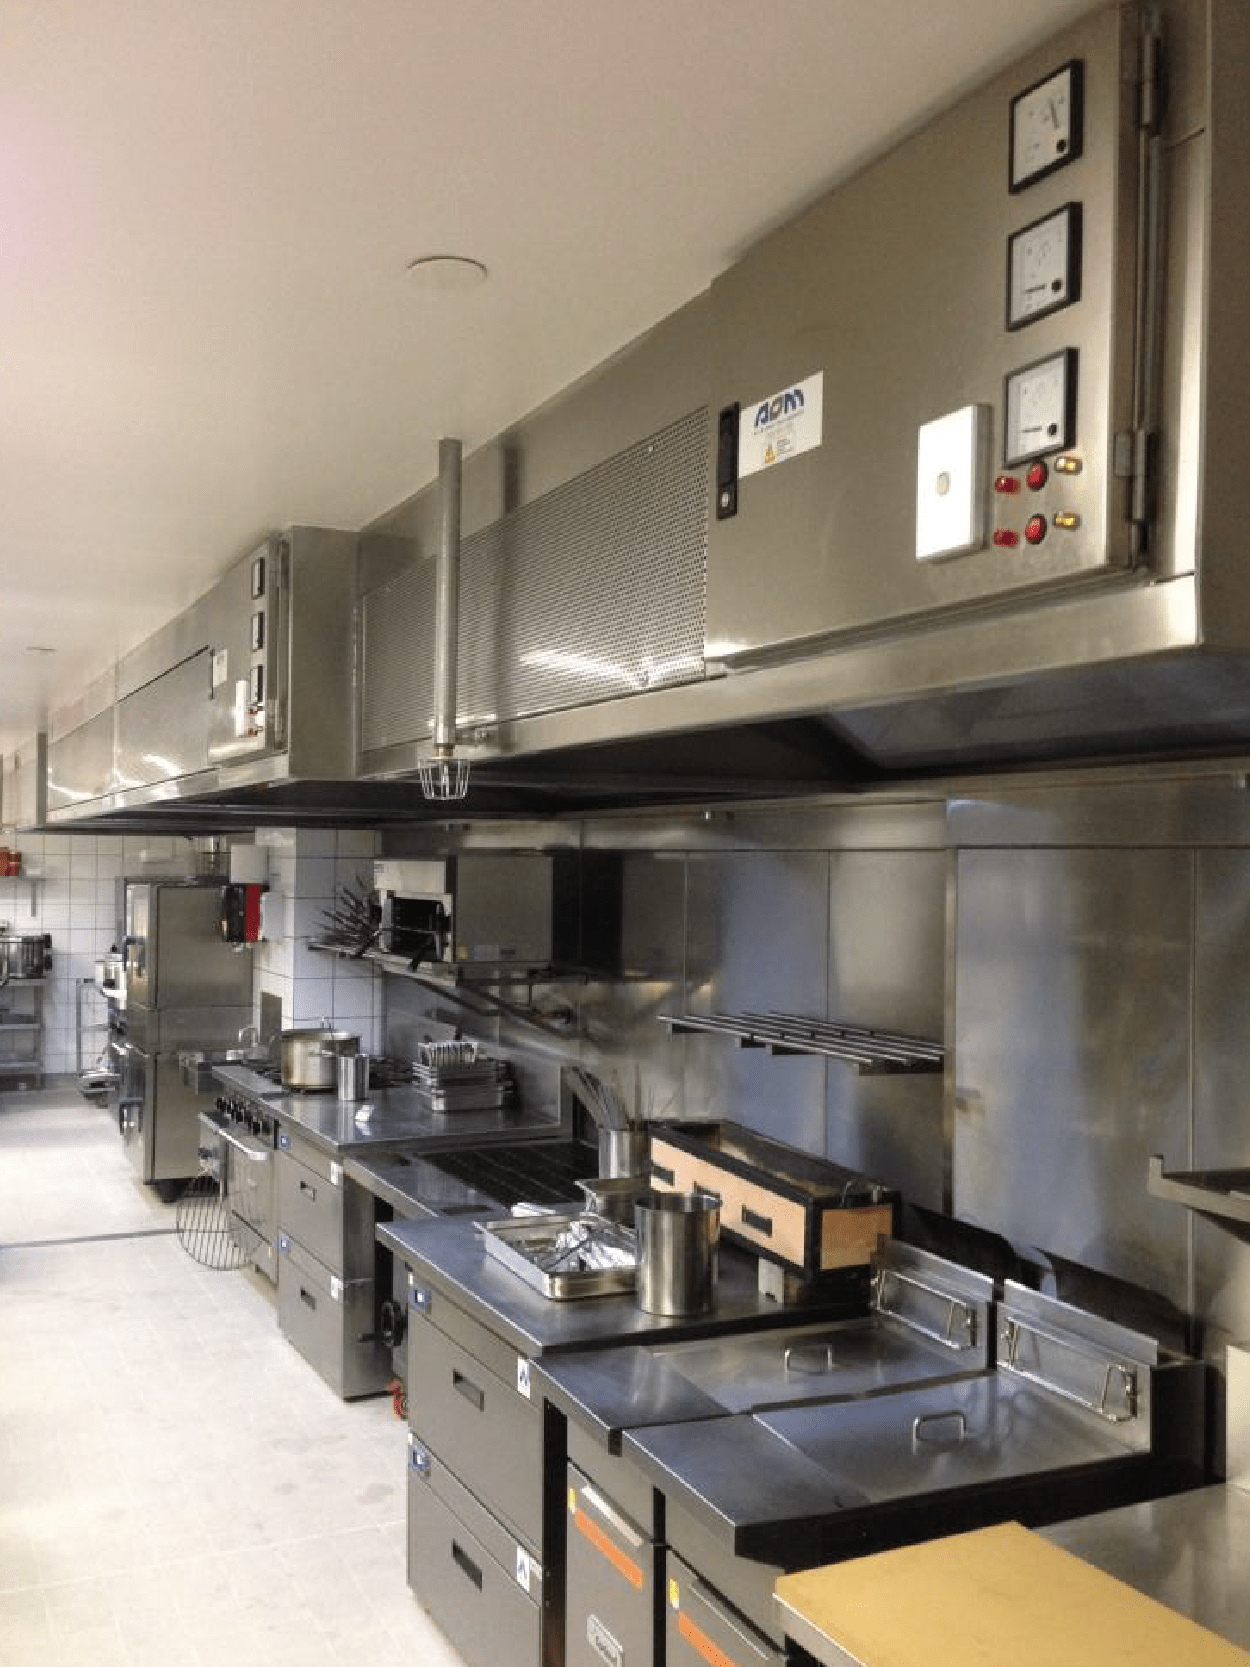 AOM Air and Odor Management Kitchen Hood at work